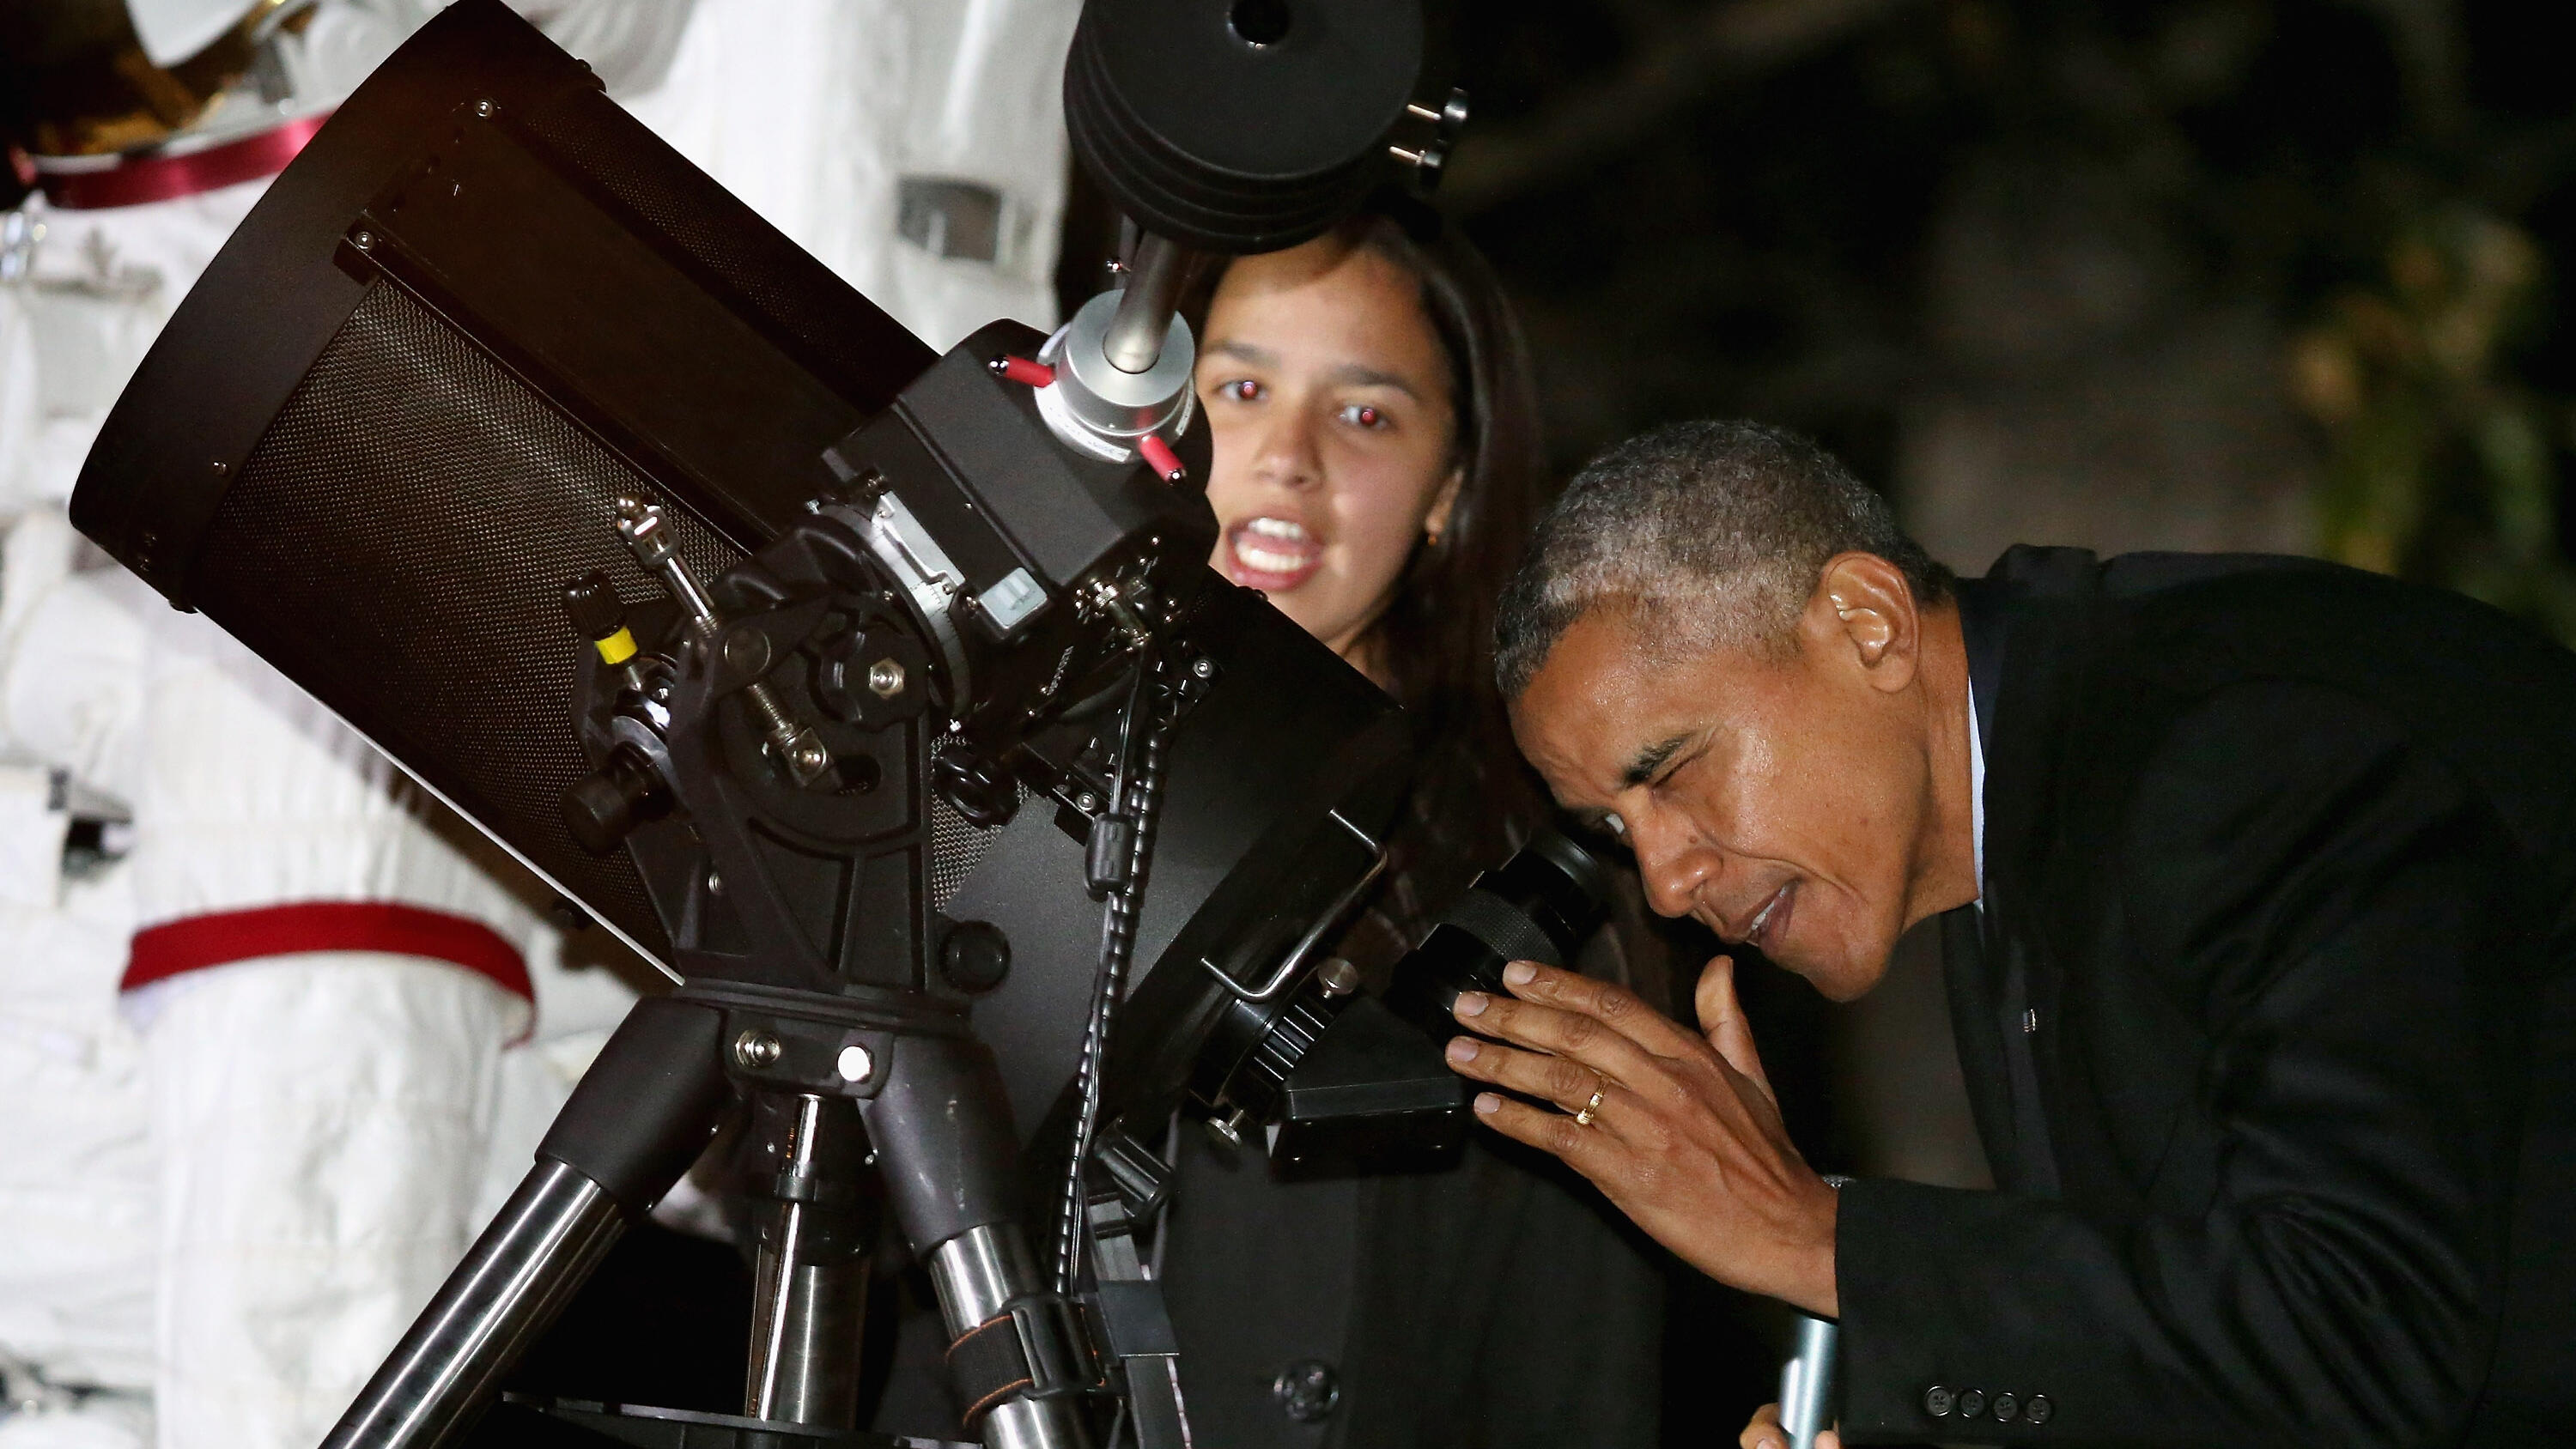 Obama 'absolutely' wants to know what UFOs are